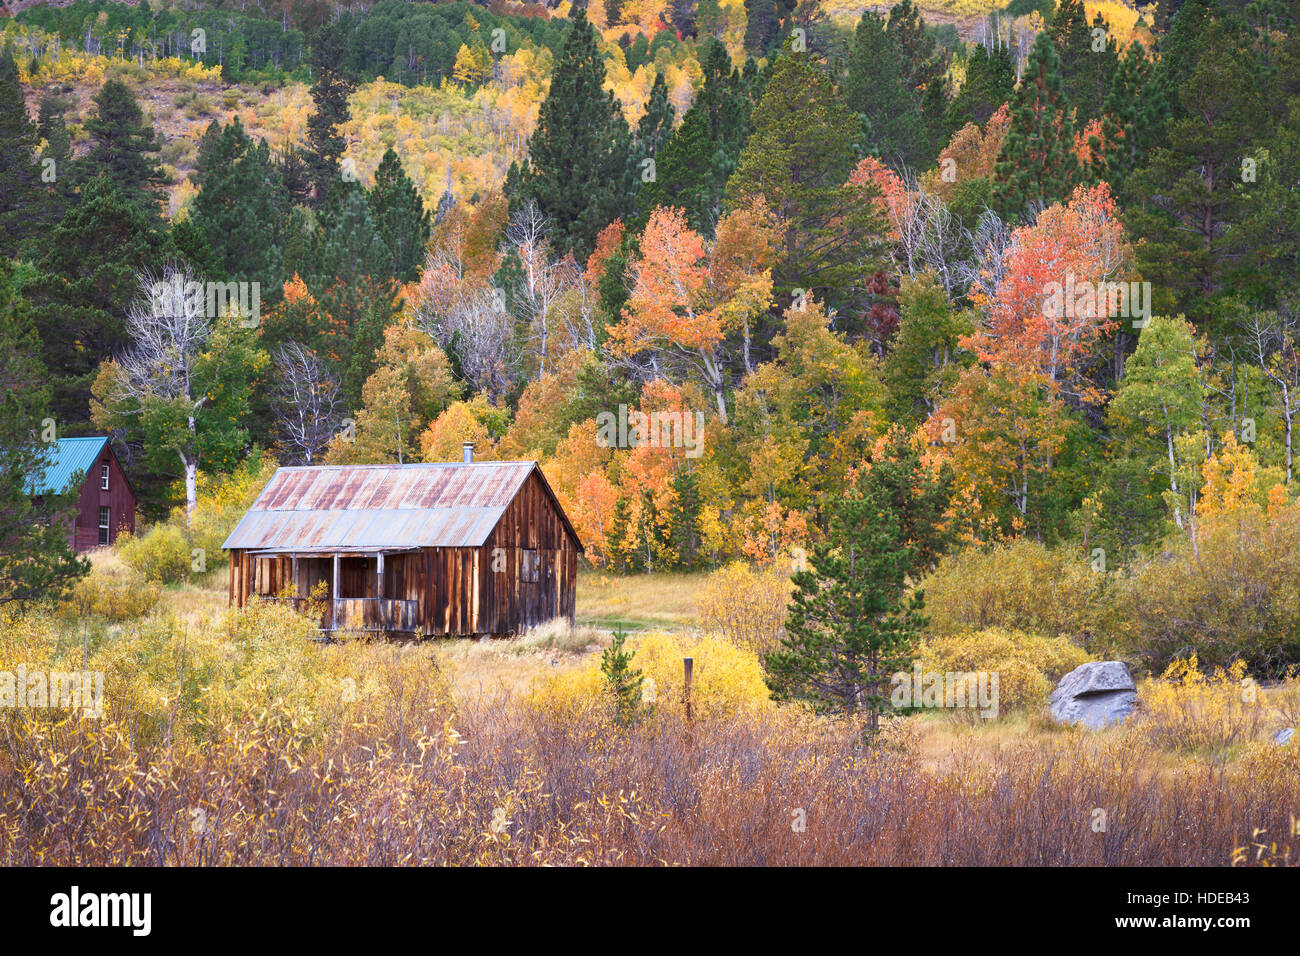 Rustic barn with fall colors in Hope Valley, California - Stock Image